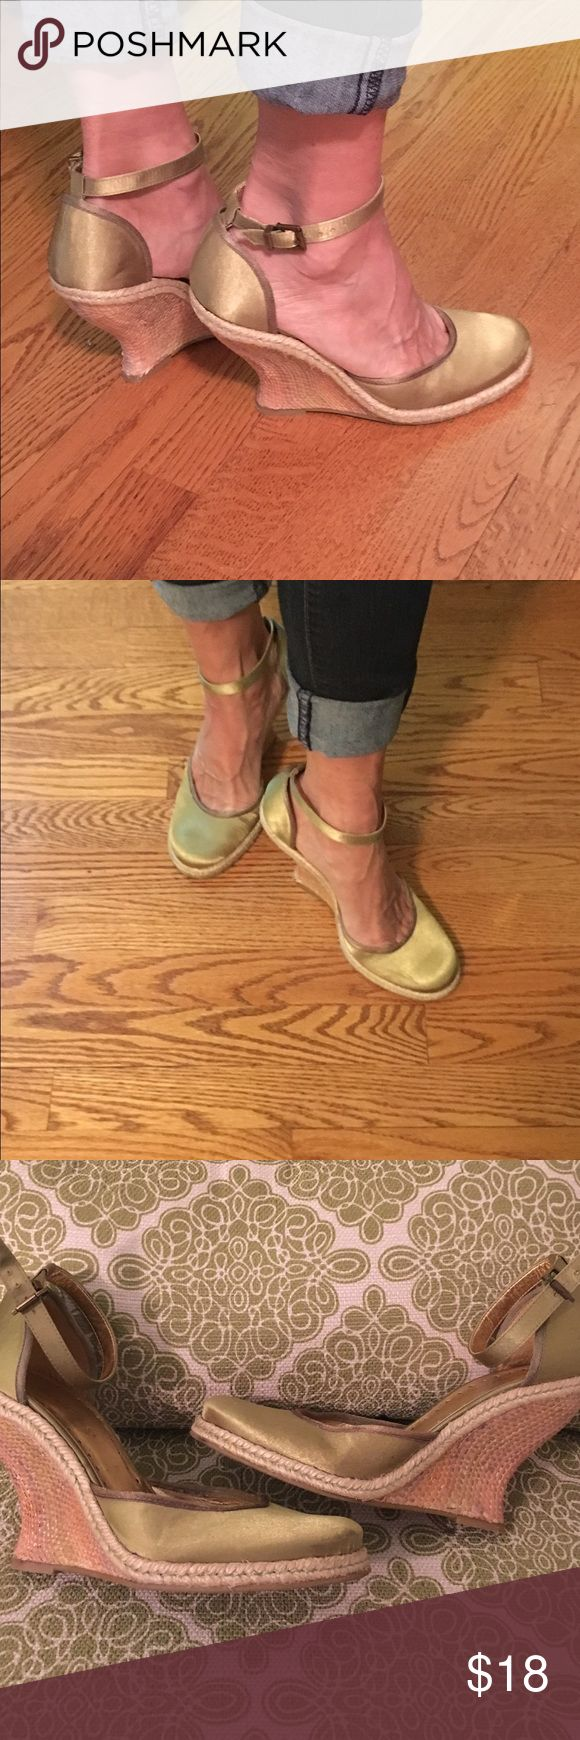 BCBG lime satin green espadrille wedge. Excellent condition. Gently worn. Wedge heel has intricate basket weave pattern. BCBG Shoes Espadrilles